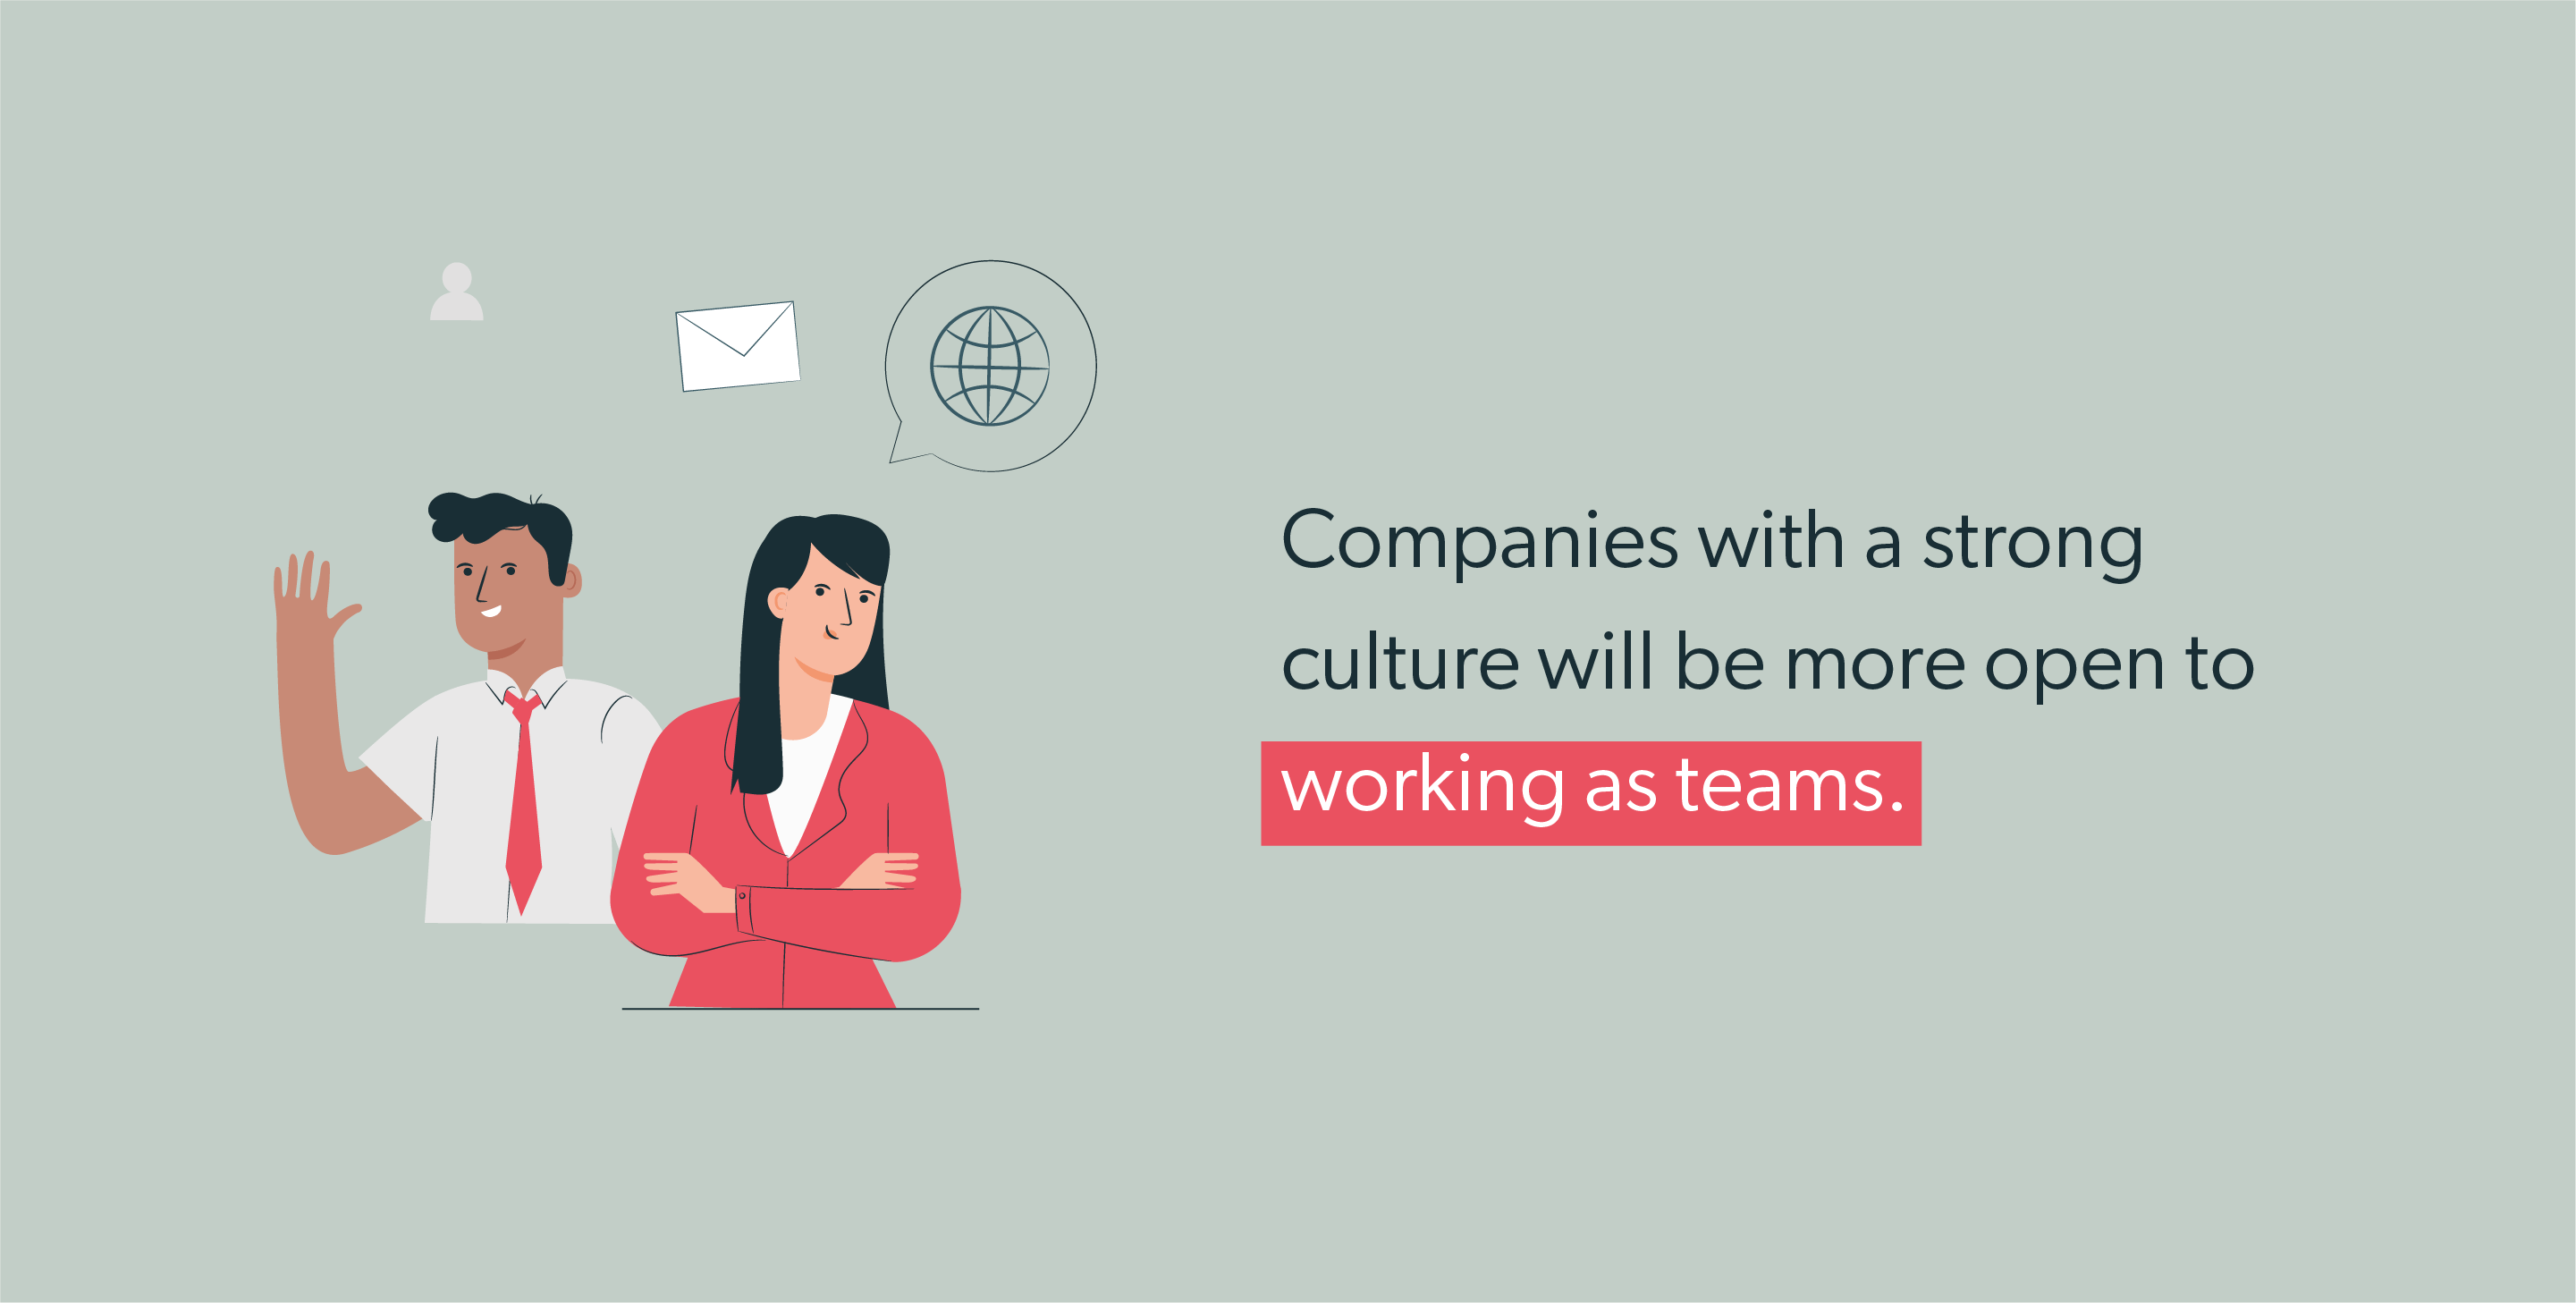 Companies with a strong culture will be more open to working as teams.